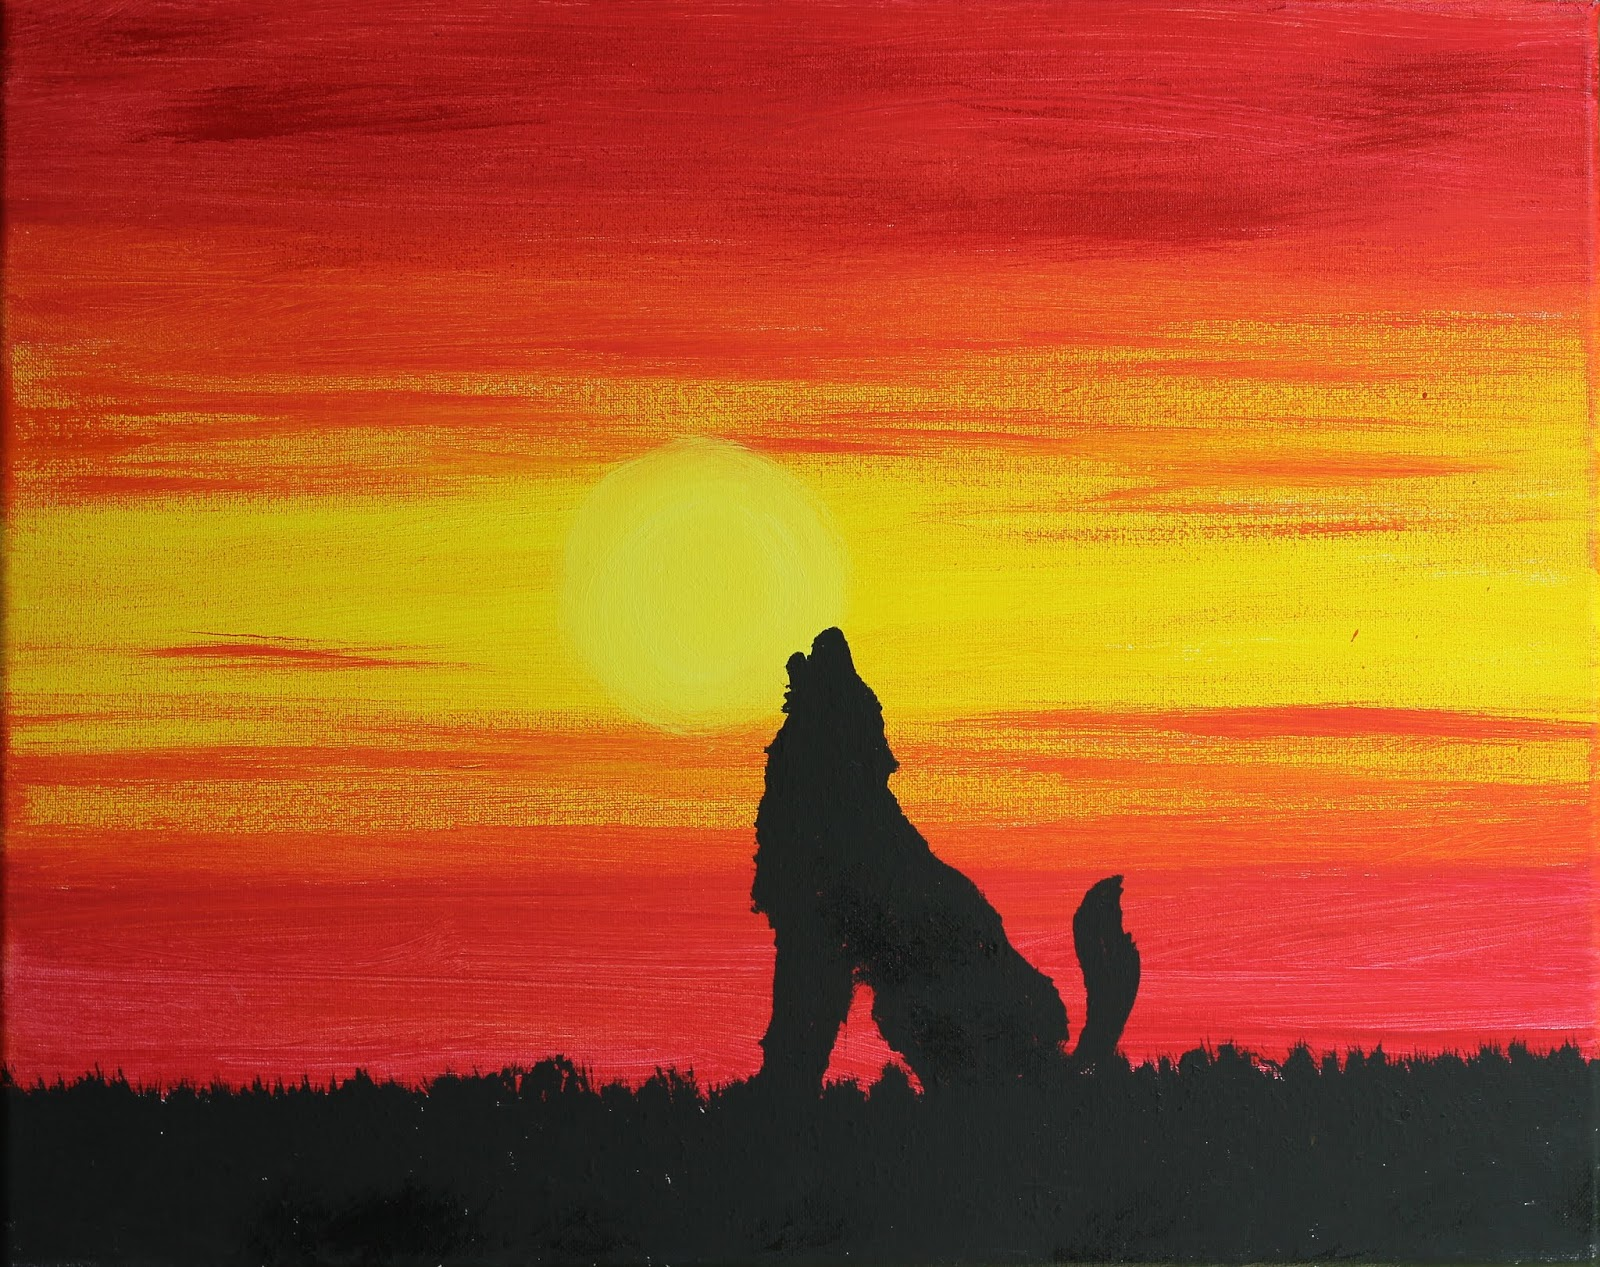 Word Weaver Art Animals In Silhouette At Sunset Kid Project